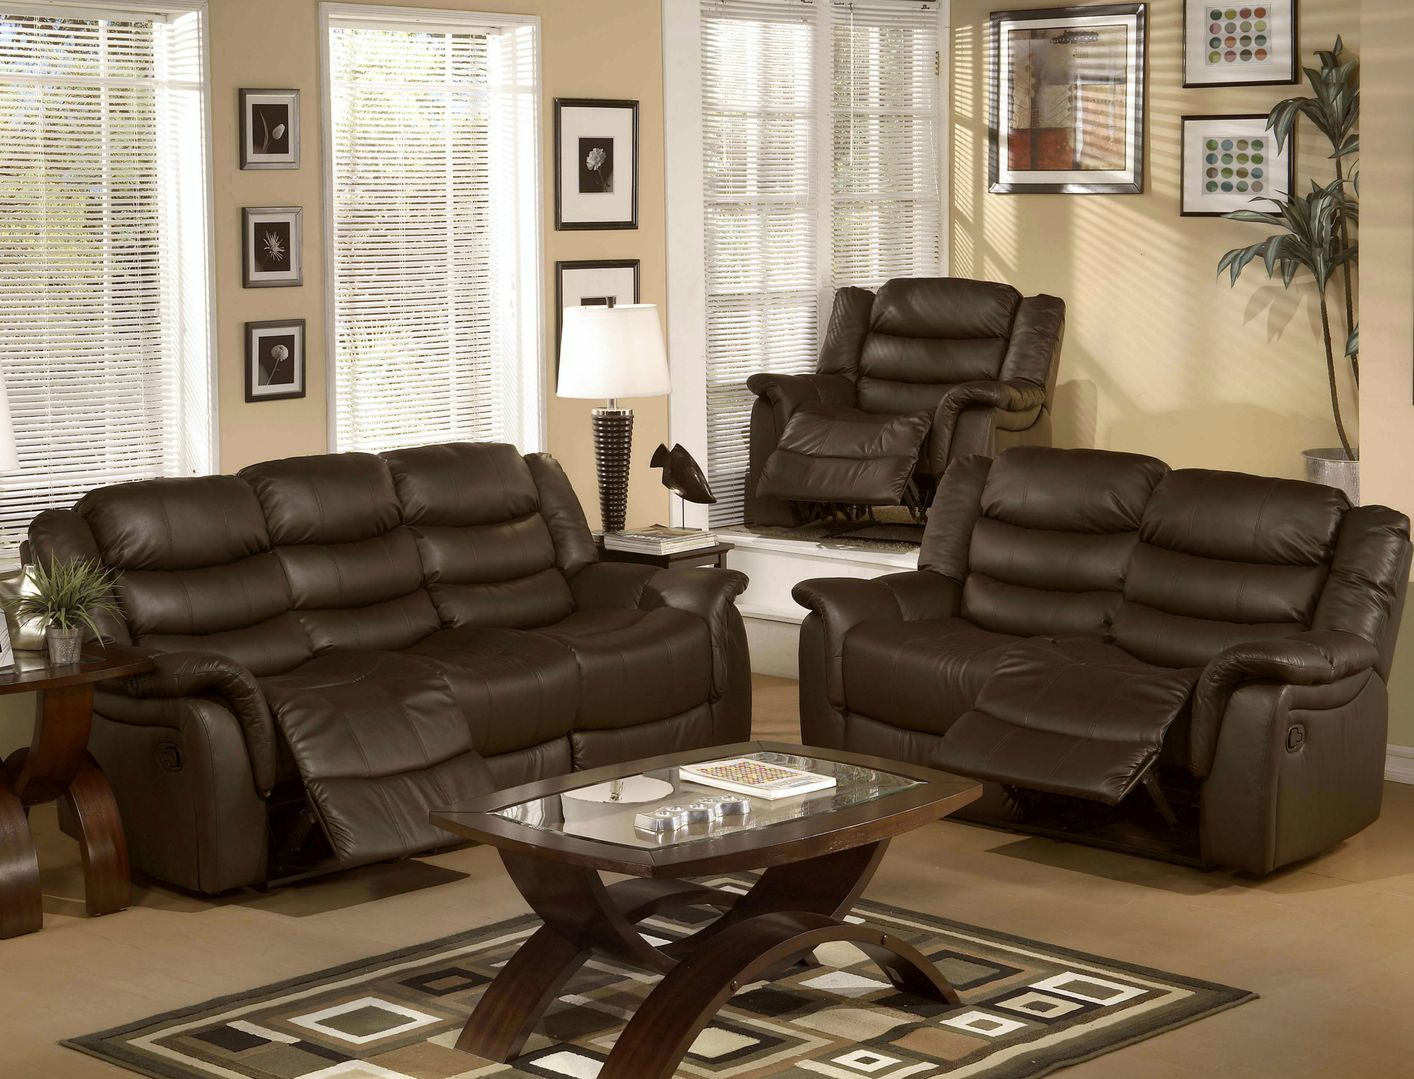 Admirable Loveseat And Chair Set Chair Sets Loveseat Recliners Uwap Interior Chair Design Uwaporg